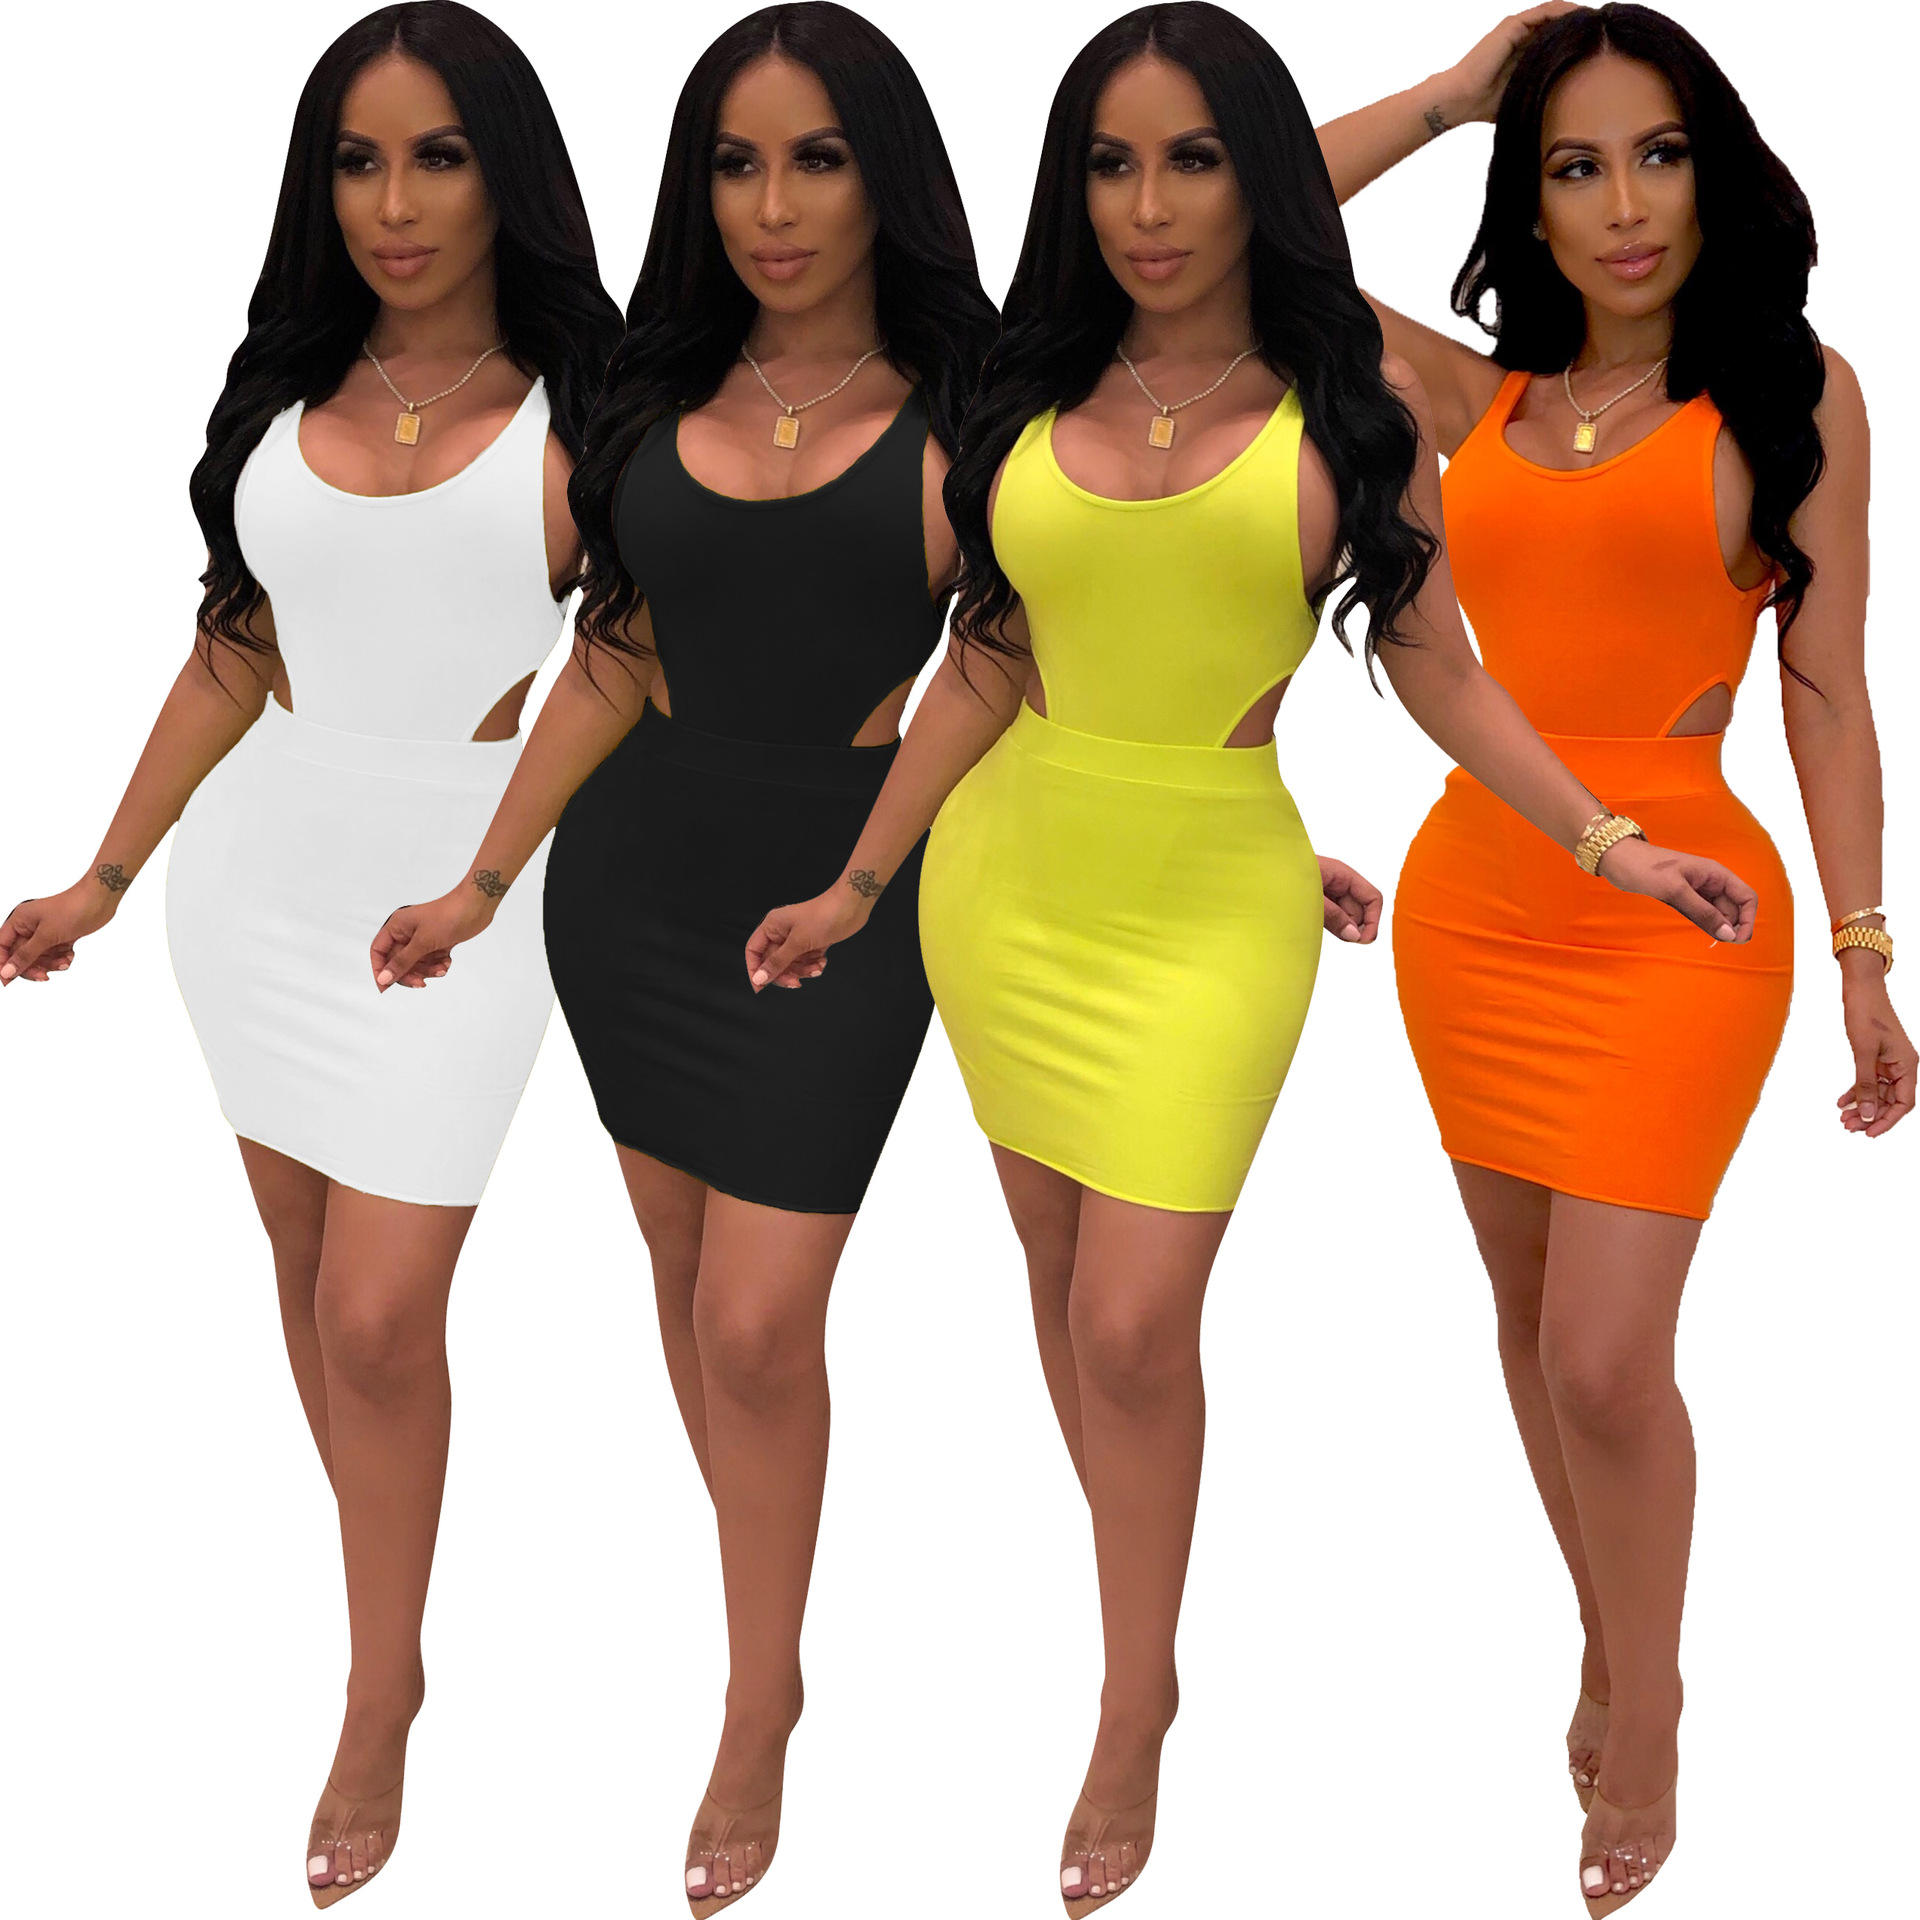 2020 Wholesale ladies clothing summer 2 pieces dress sexy women sleeveless hollow out neon bodycon mini dress